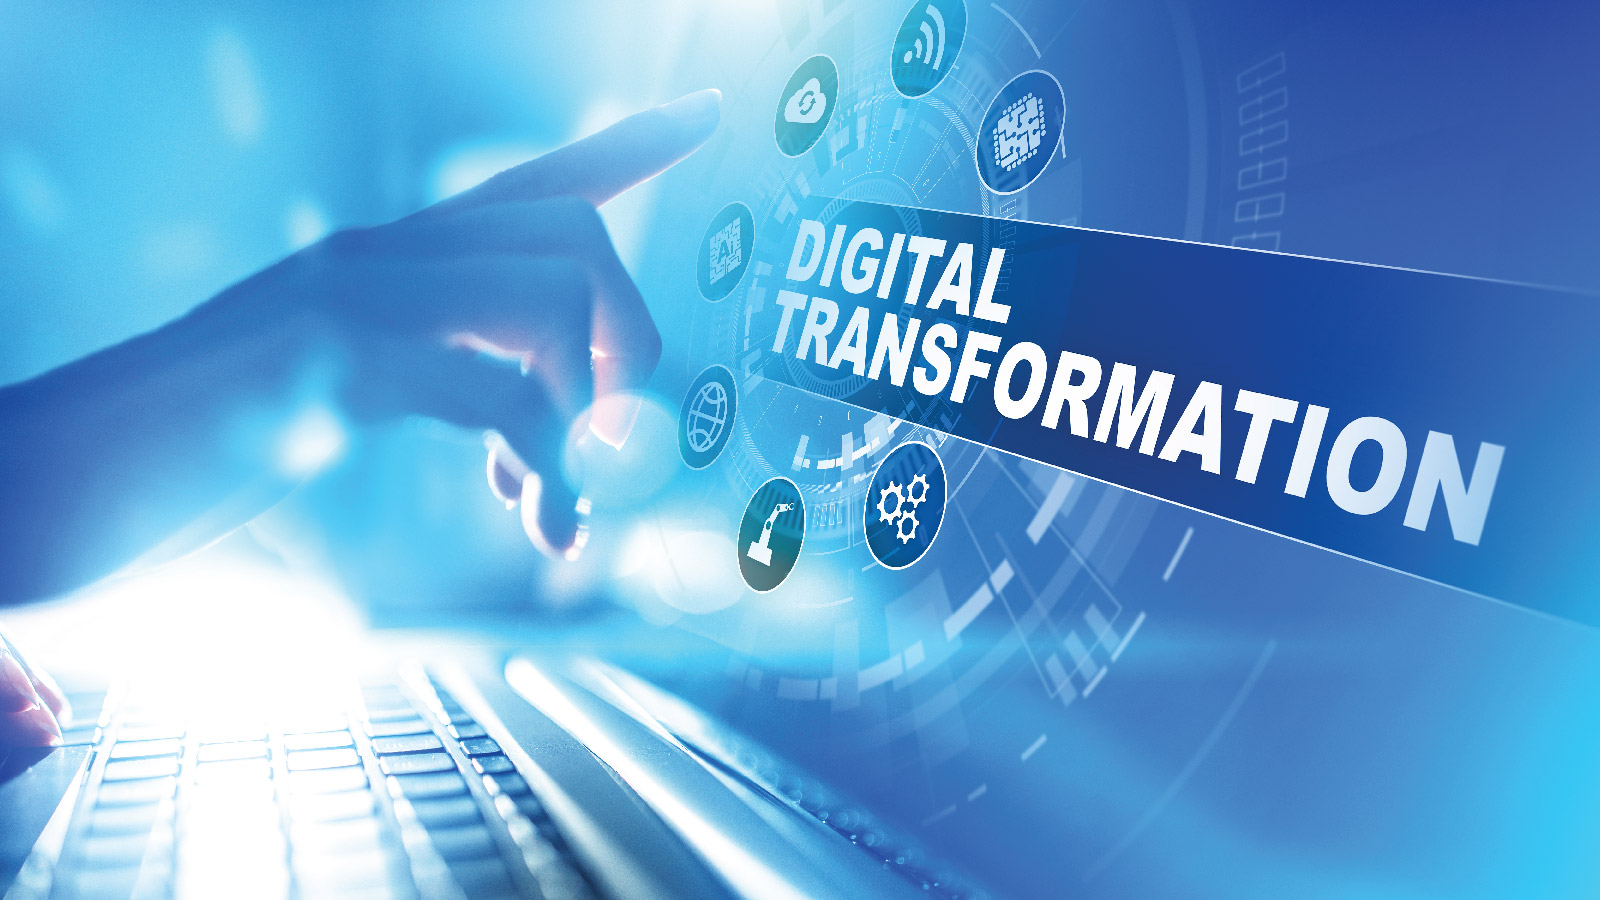 Digital Transformation, Employee Training, Tech Trends